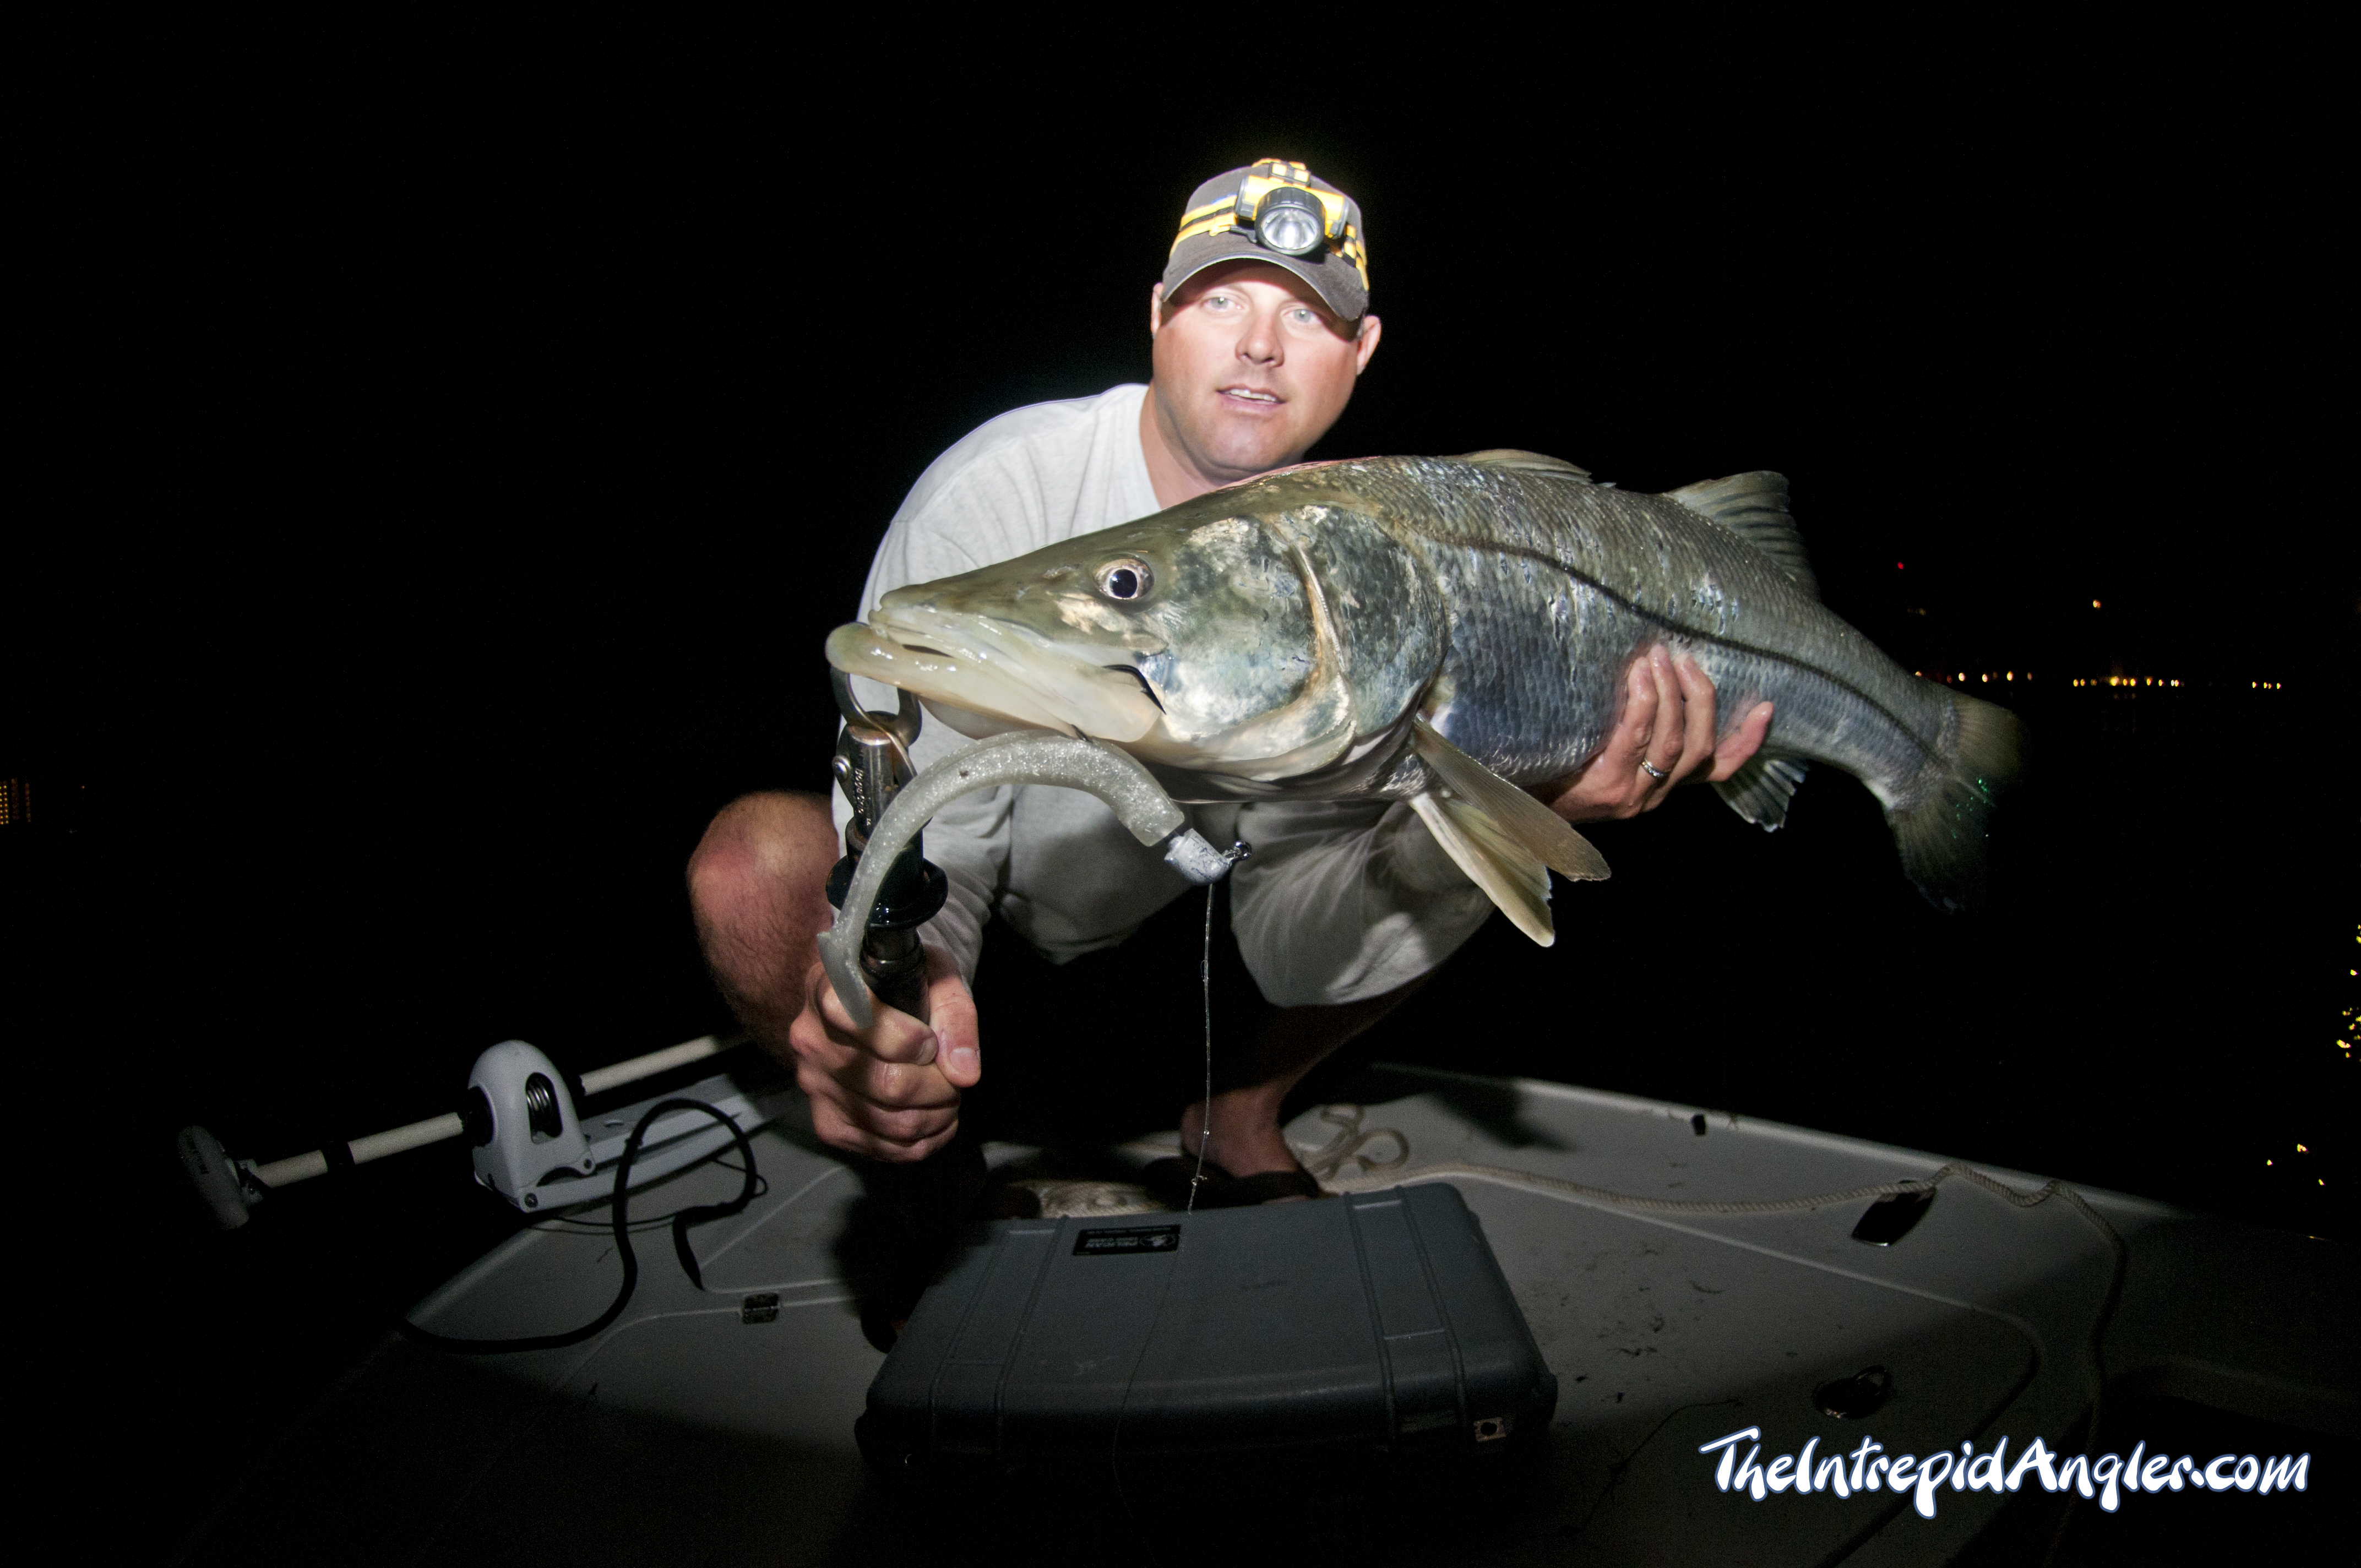 Snook-Jason-Thumper-Intrepid-Angler Loosing Sleep And Catching Fish Fishing Reports